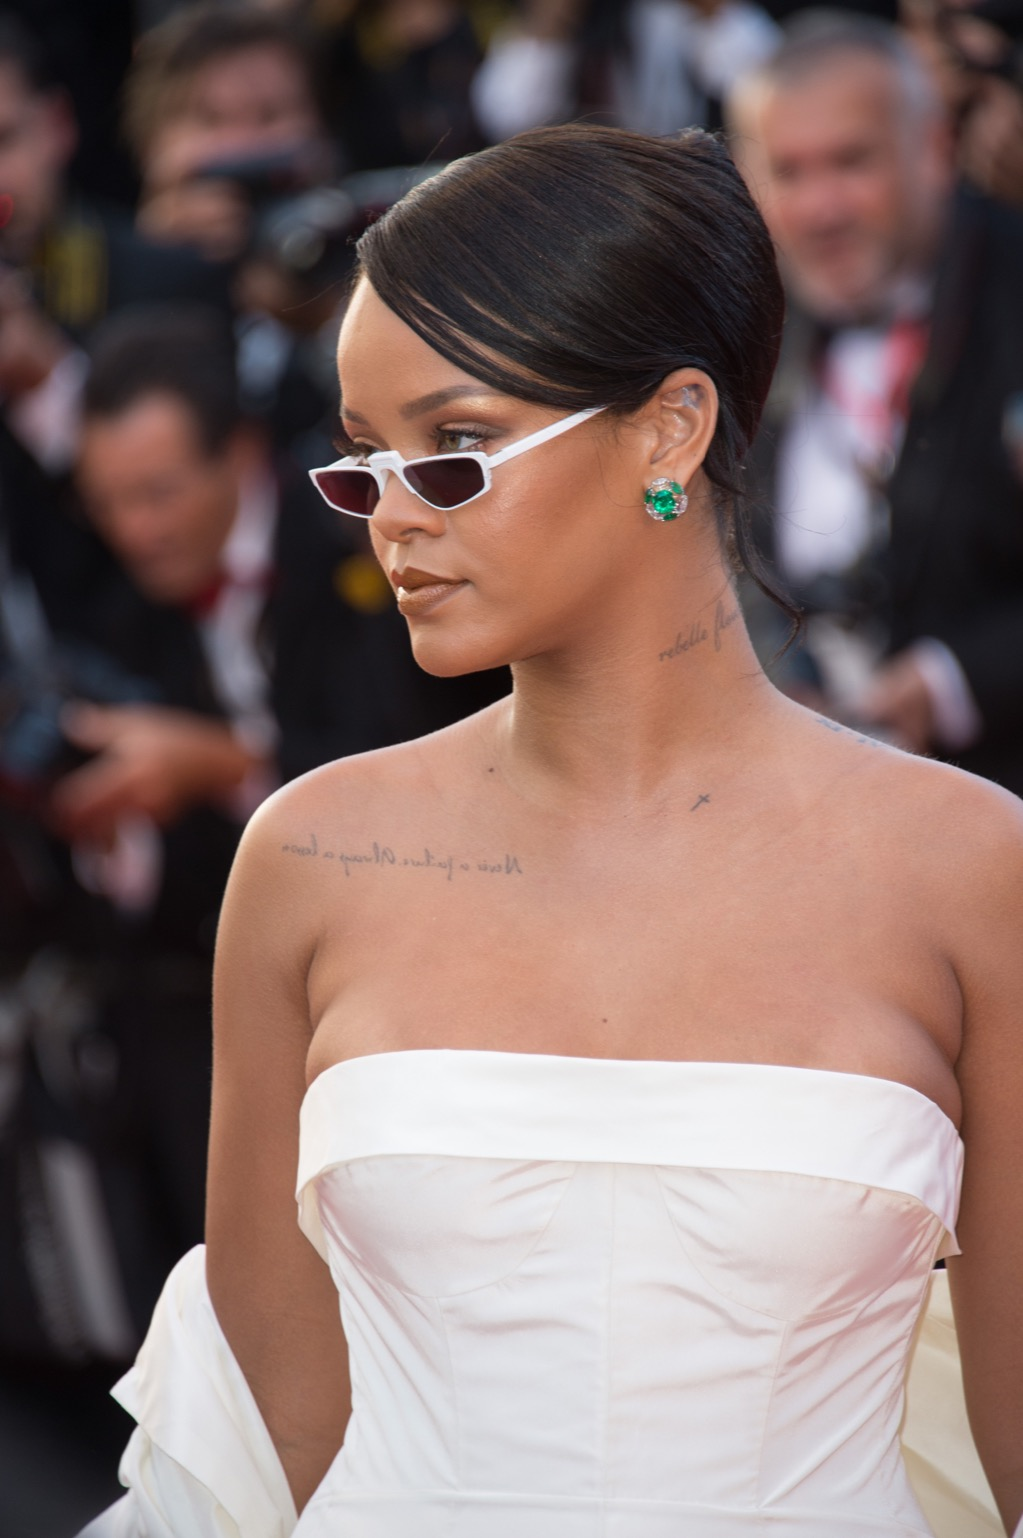 Rihanna Musicians Dying to be Actors